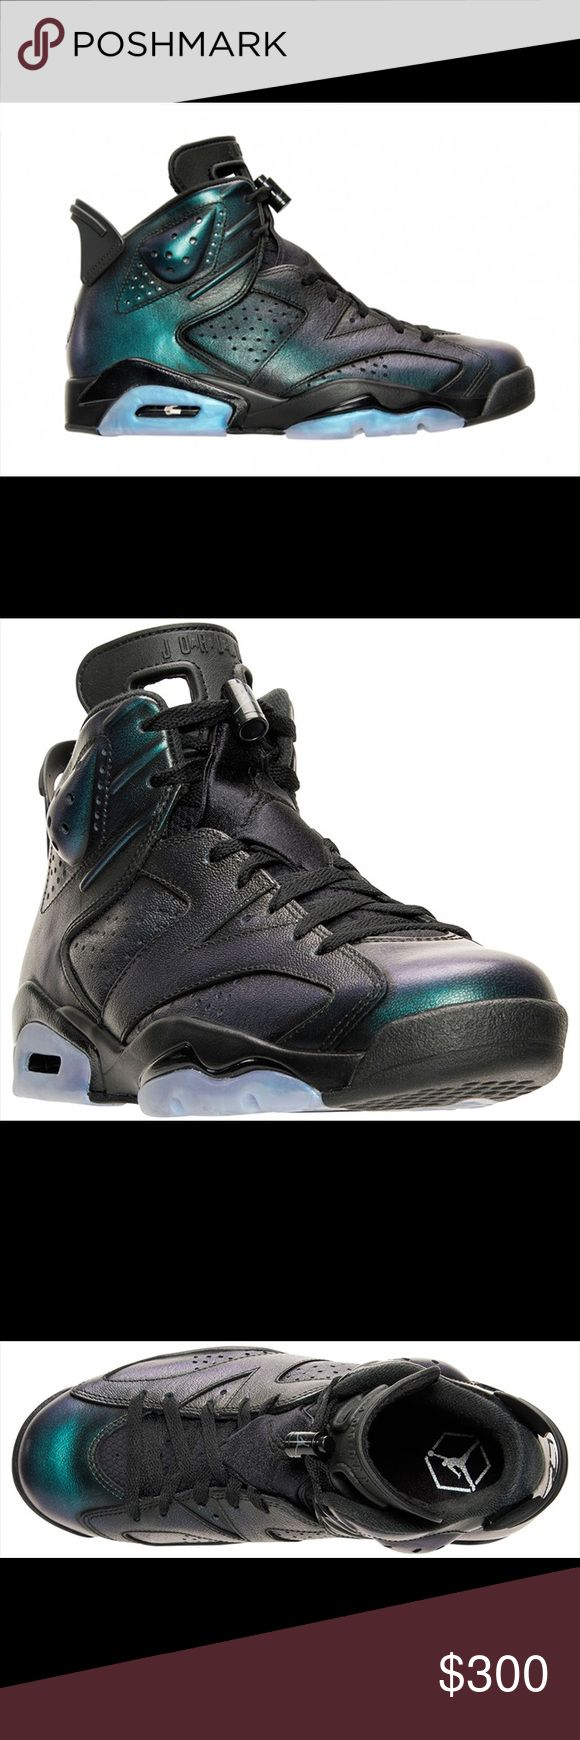 """(PREORDER TODAY)Air Jordan Retro 6 """"All Star"""" Release date is February 17th, Preorder yours now !!  If you don't want to wait on a long line , pre order today and have yours 3 days after the release date. PayPal and email invoice only Jordan Shoes Sneakers"""